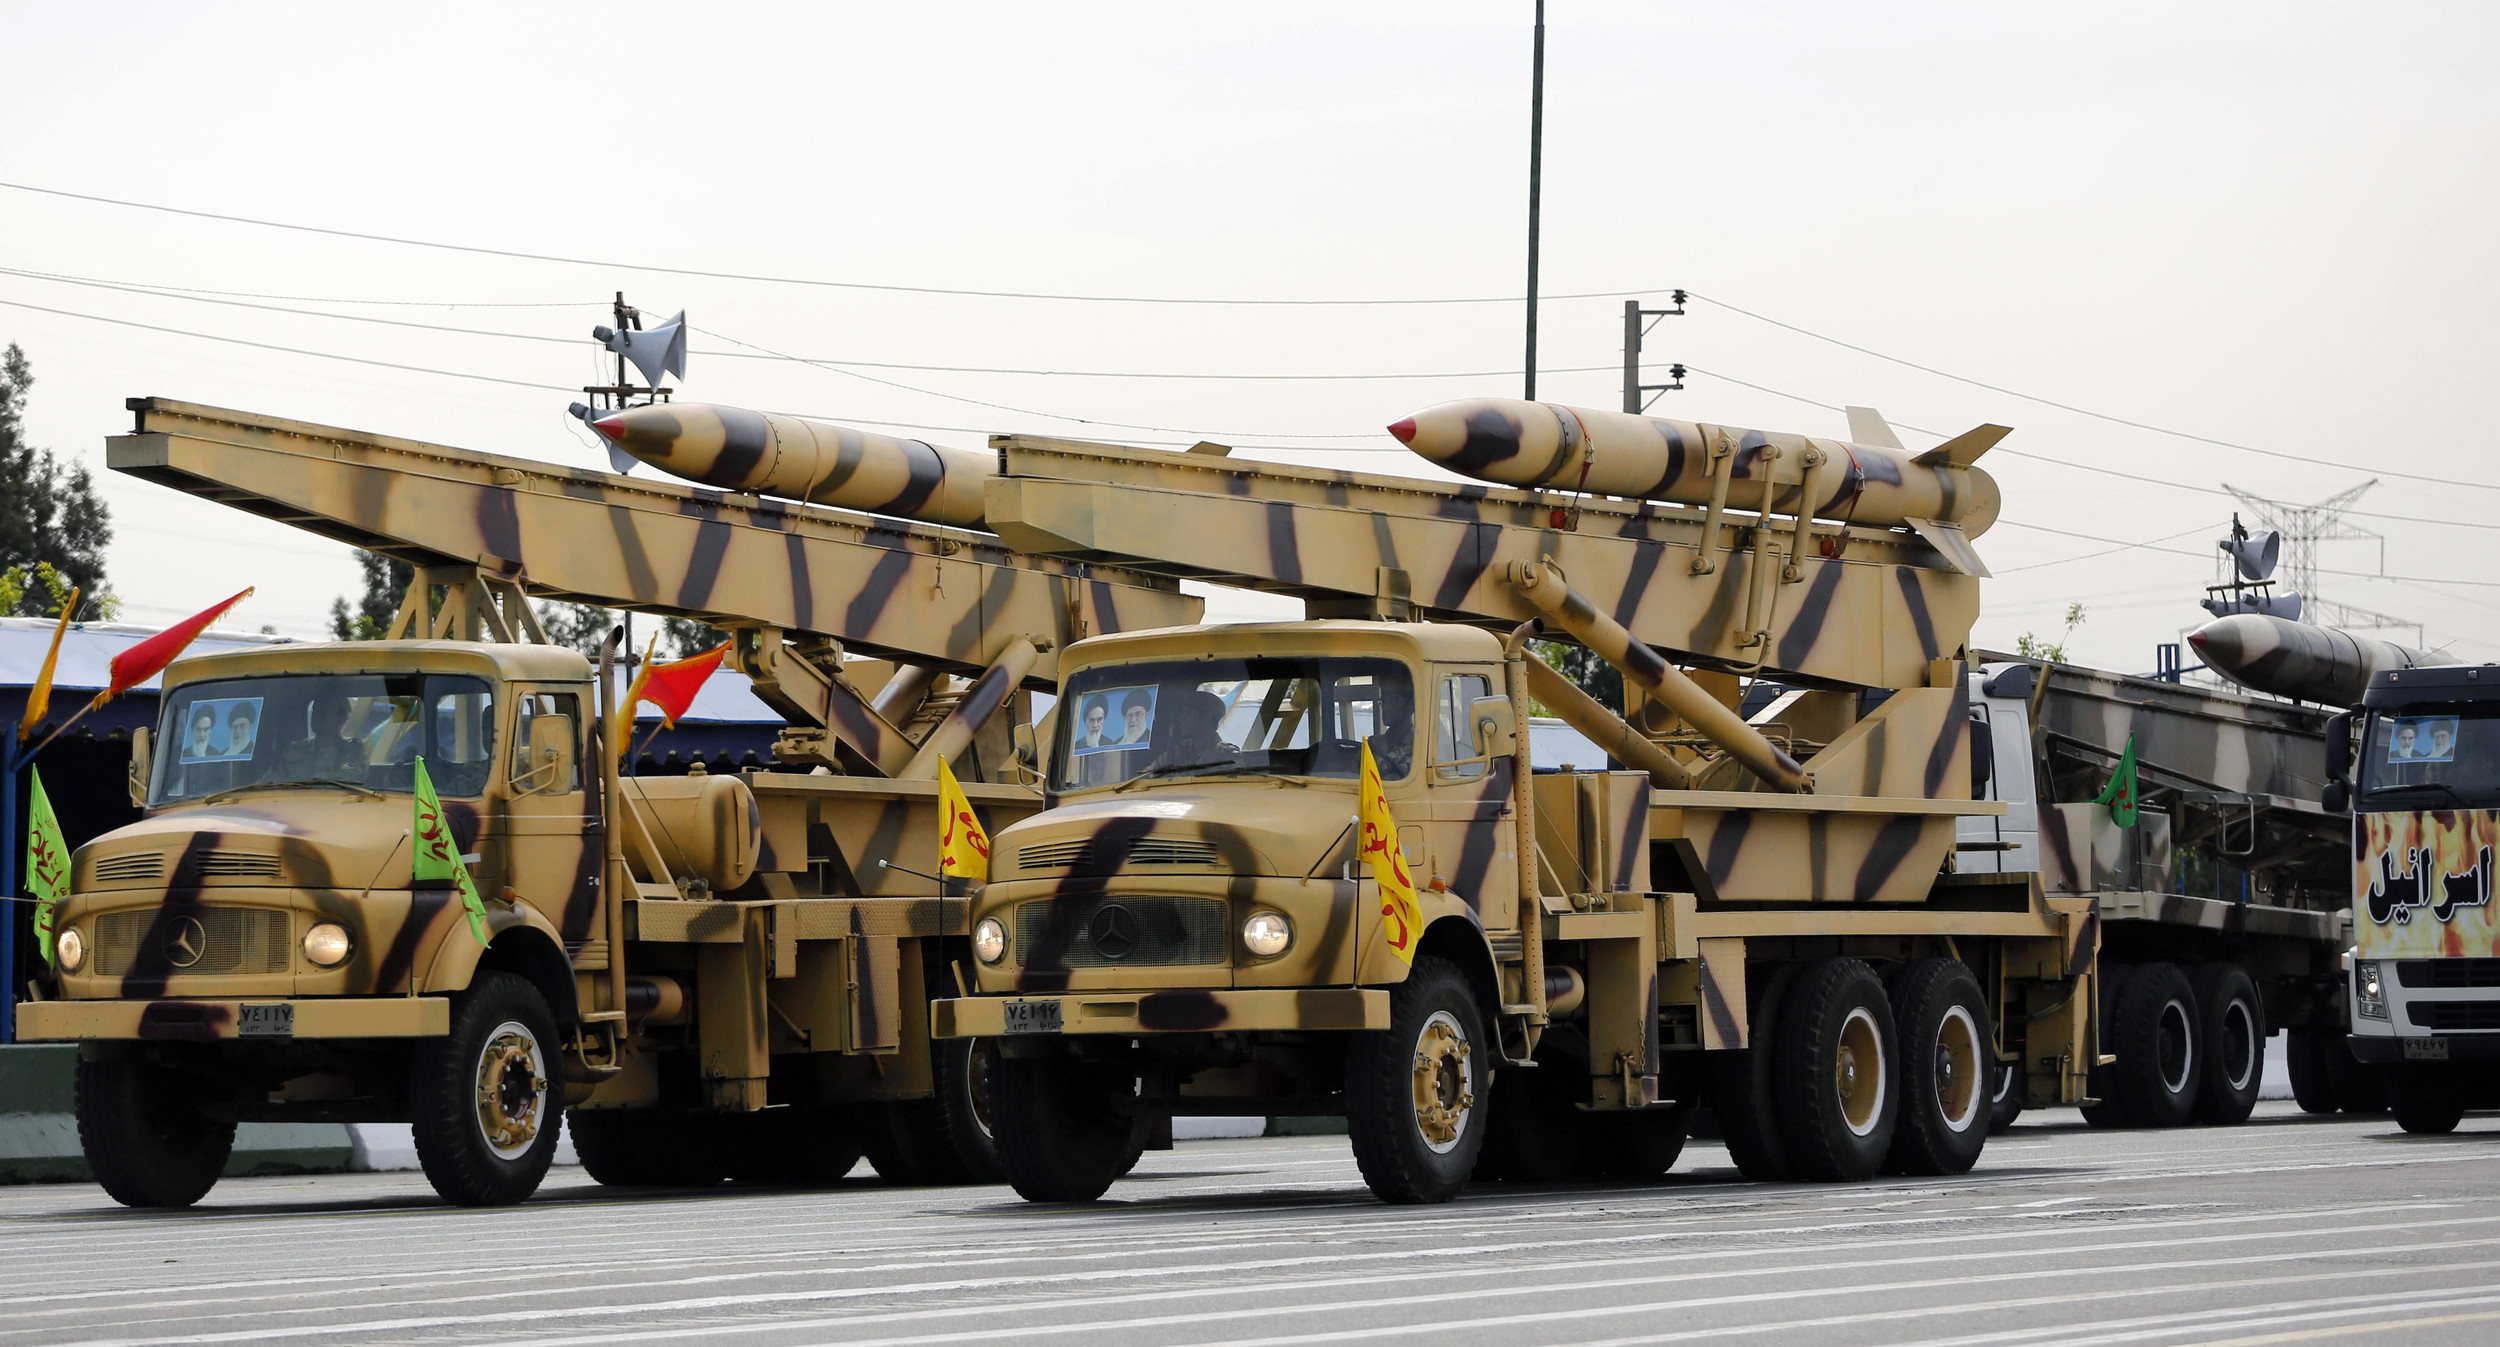 With Iran's Help These Iraqi Militias Are Acquiring Deadlier Rockets